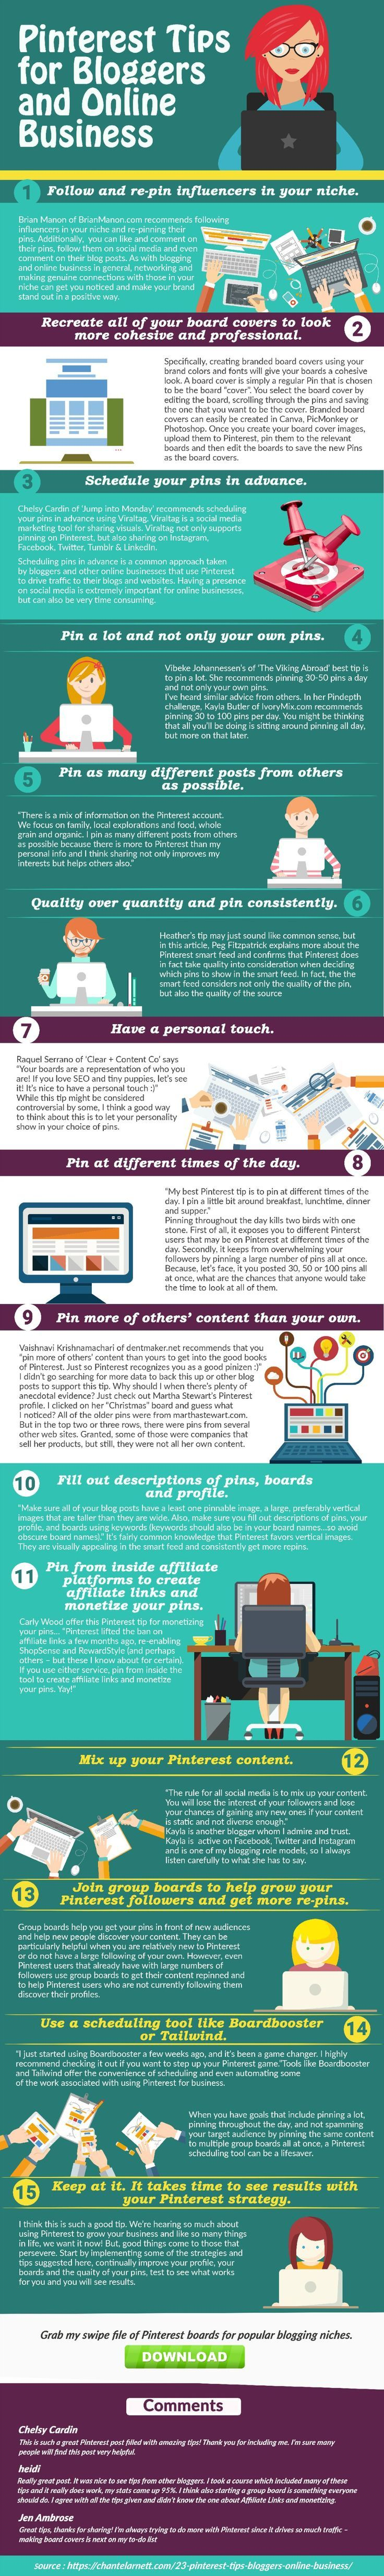 Ready to up your Pinterest marketing game? Check out this list of 23 tips to use Pinterest to market your online business and grap by SWIPE FILE of board ideas for popular blogging niches!